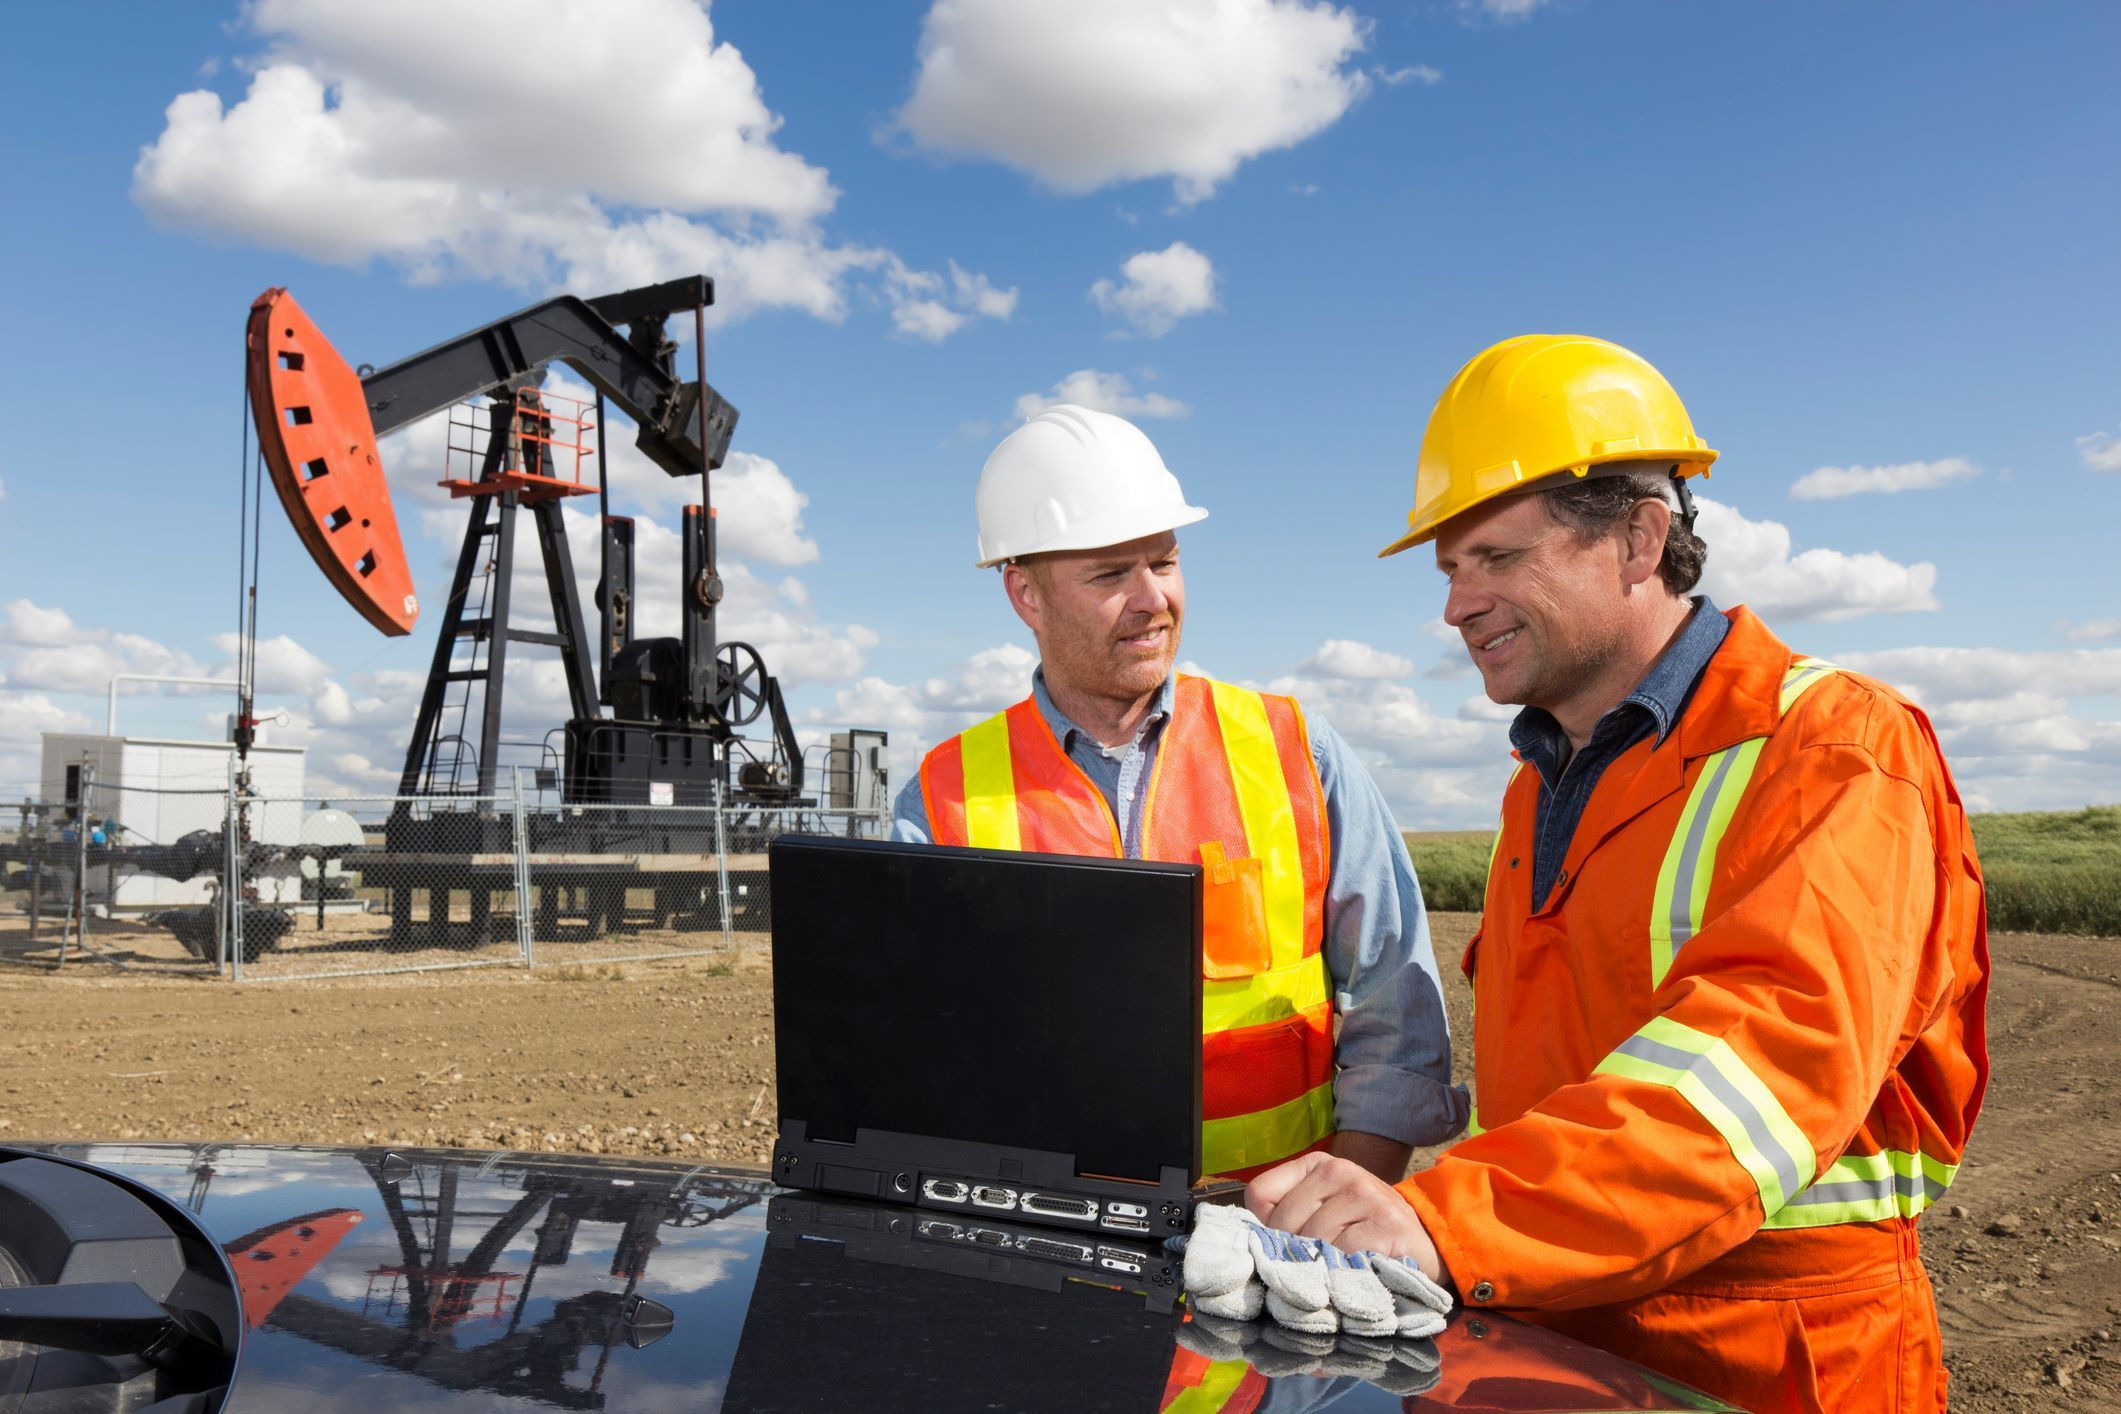 Oil and gas is embracing technology and using it to change